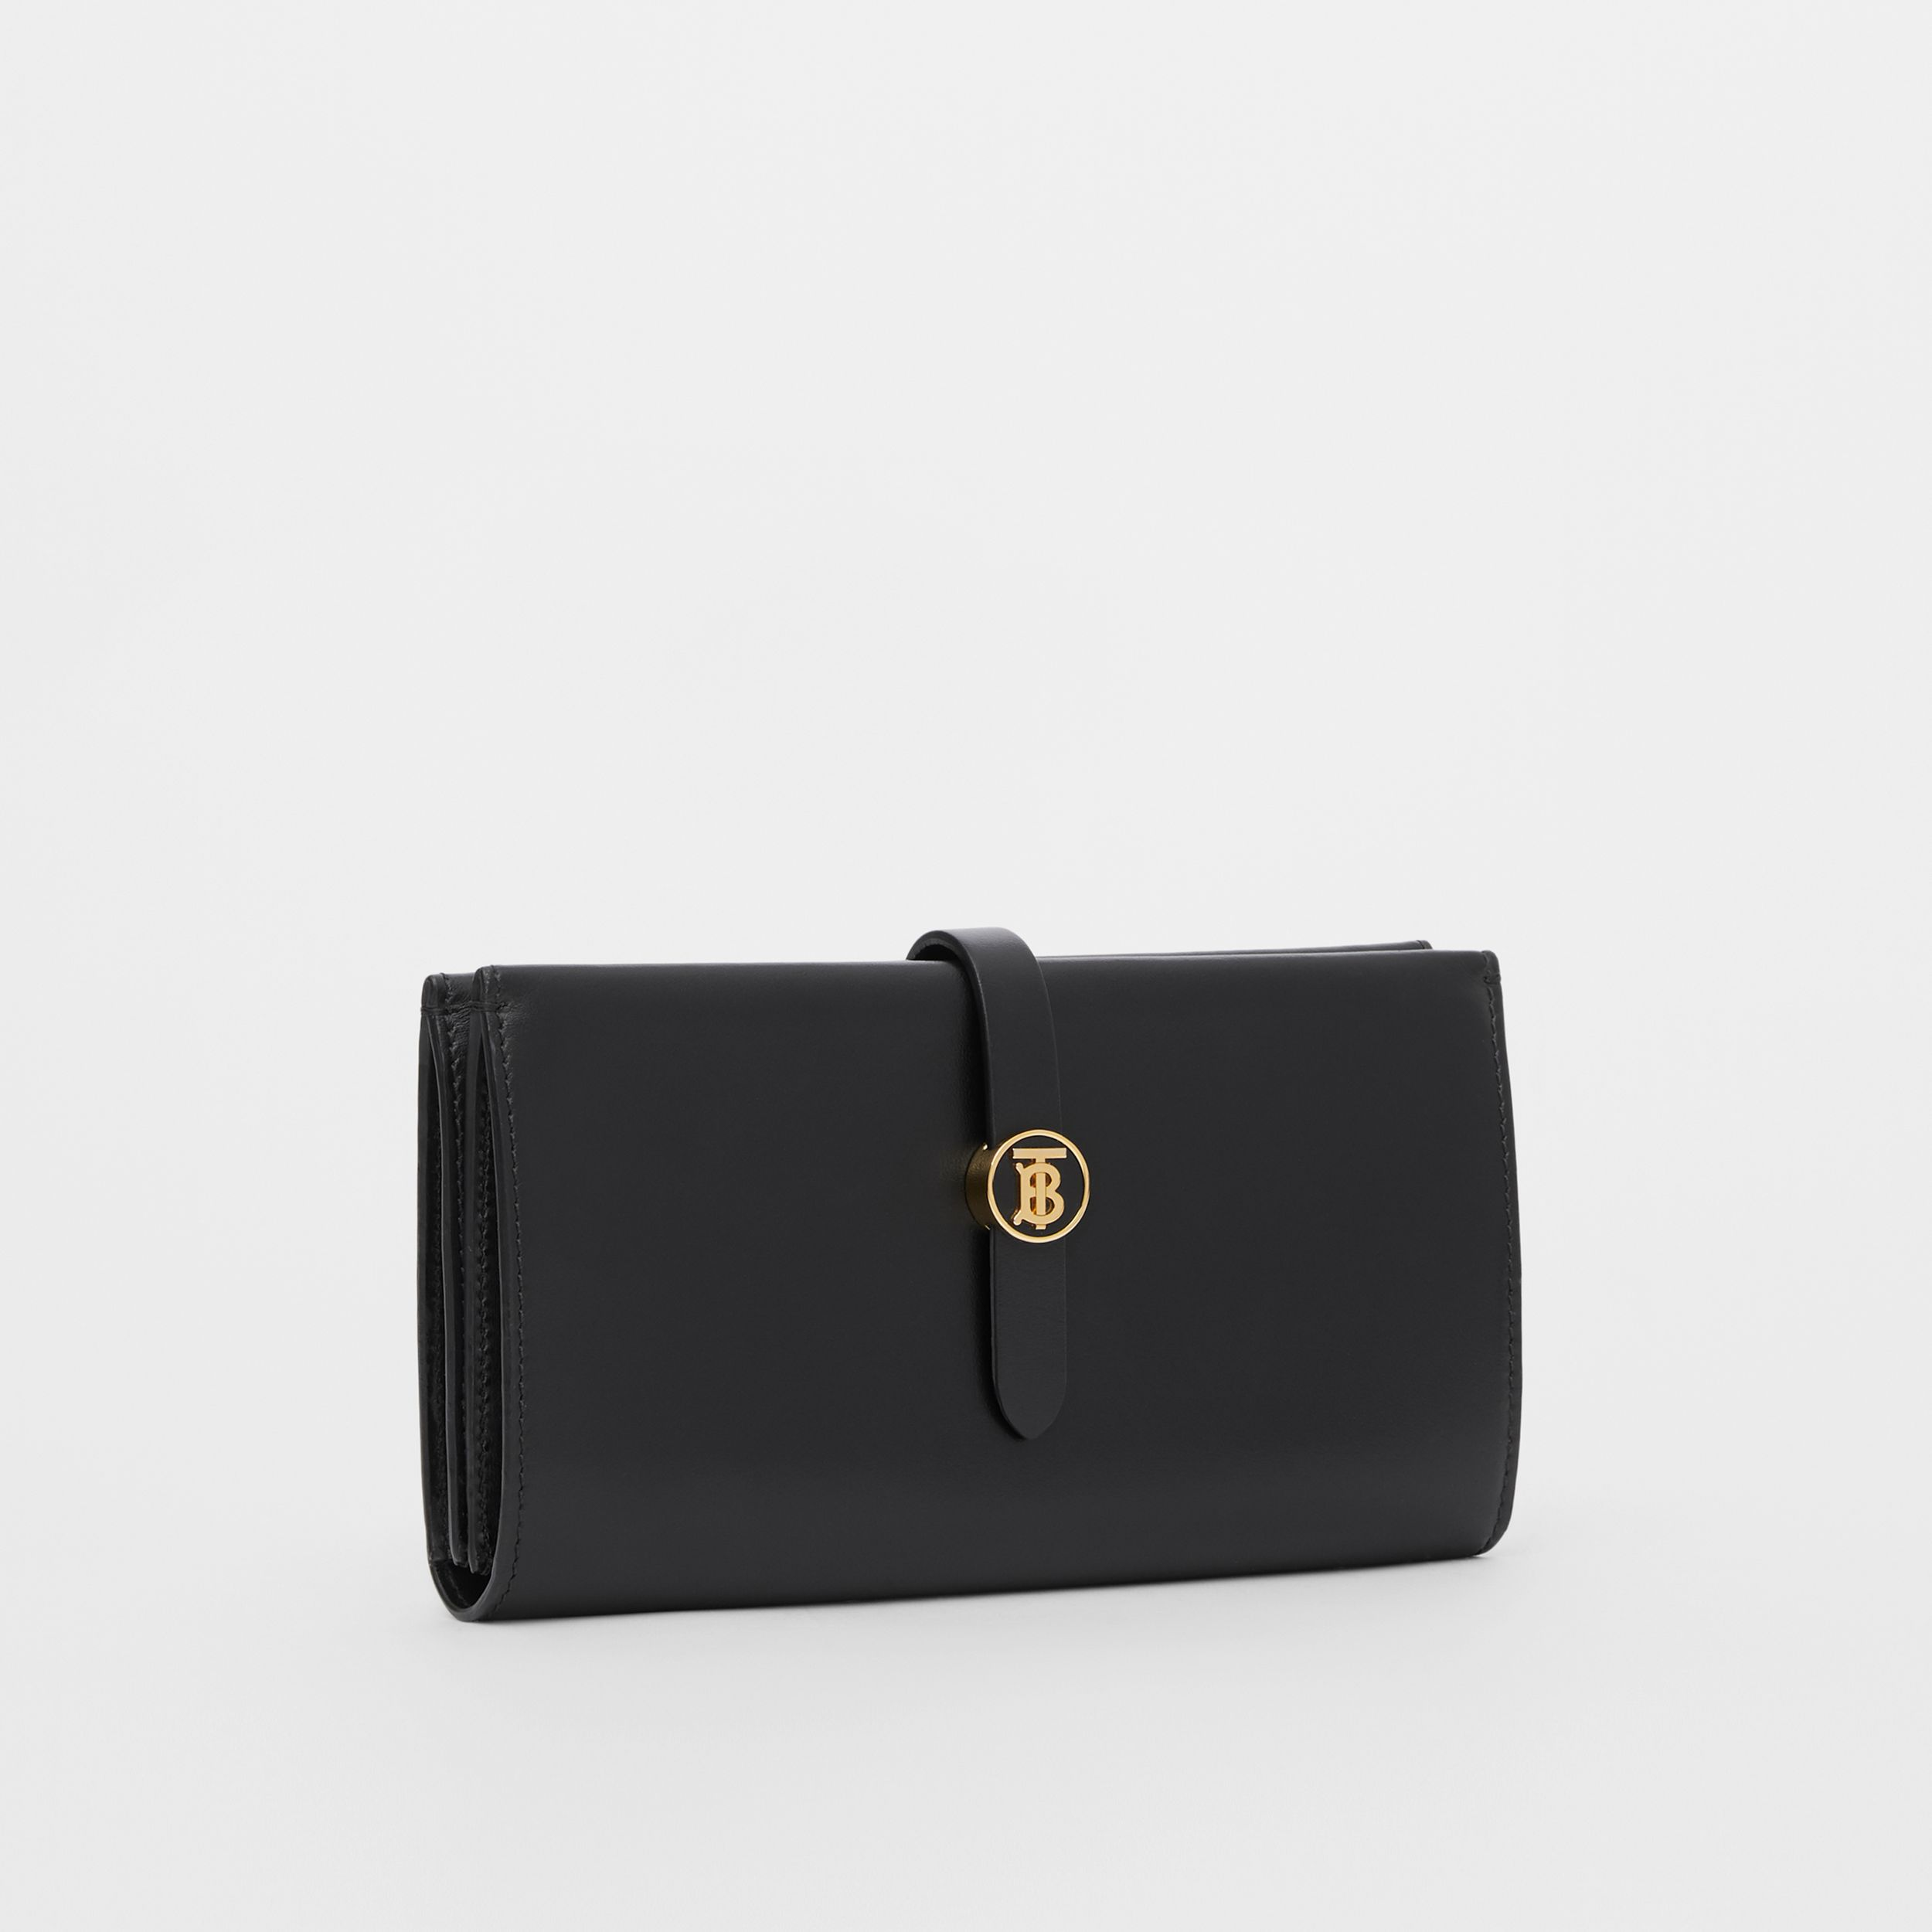 Monogram Motif Leather Folding Wallet in Black - Women | Burberry - 4